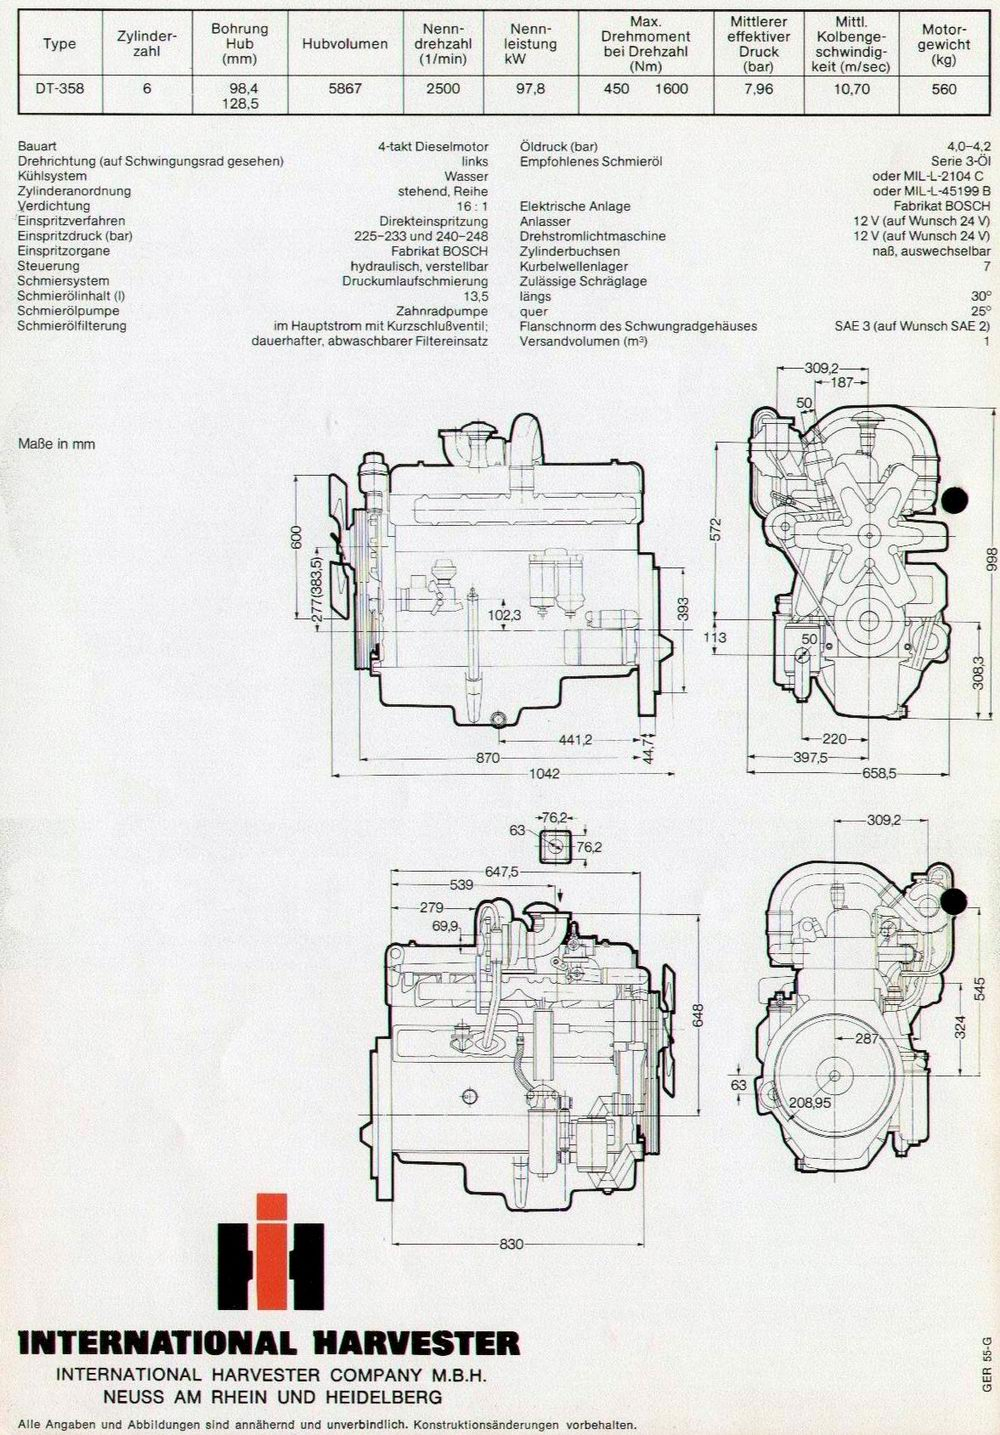 1013570 Fuel Line Routing 54 F100 further Misc further 7cw42 Mitsubishi Montero Limited Changing Spark Plugs likewise TM 5 6115 593 34 289 as well Diesel Engine Clip Art. on 4 cylinder diesel engine